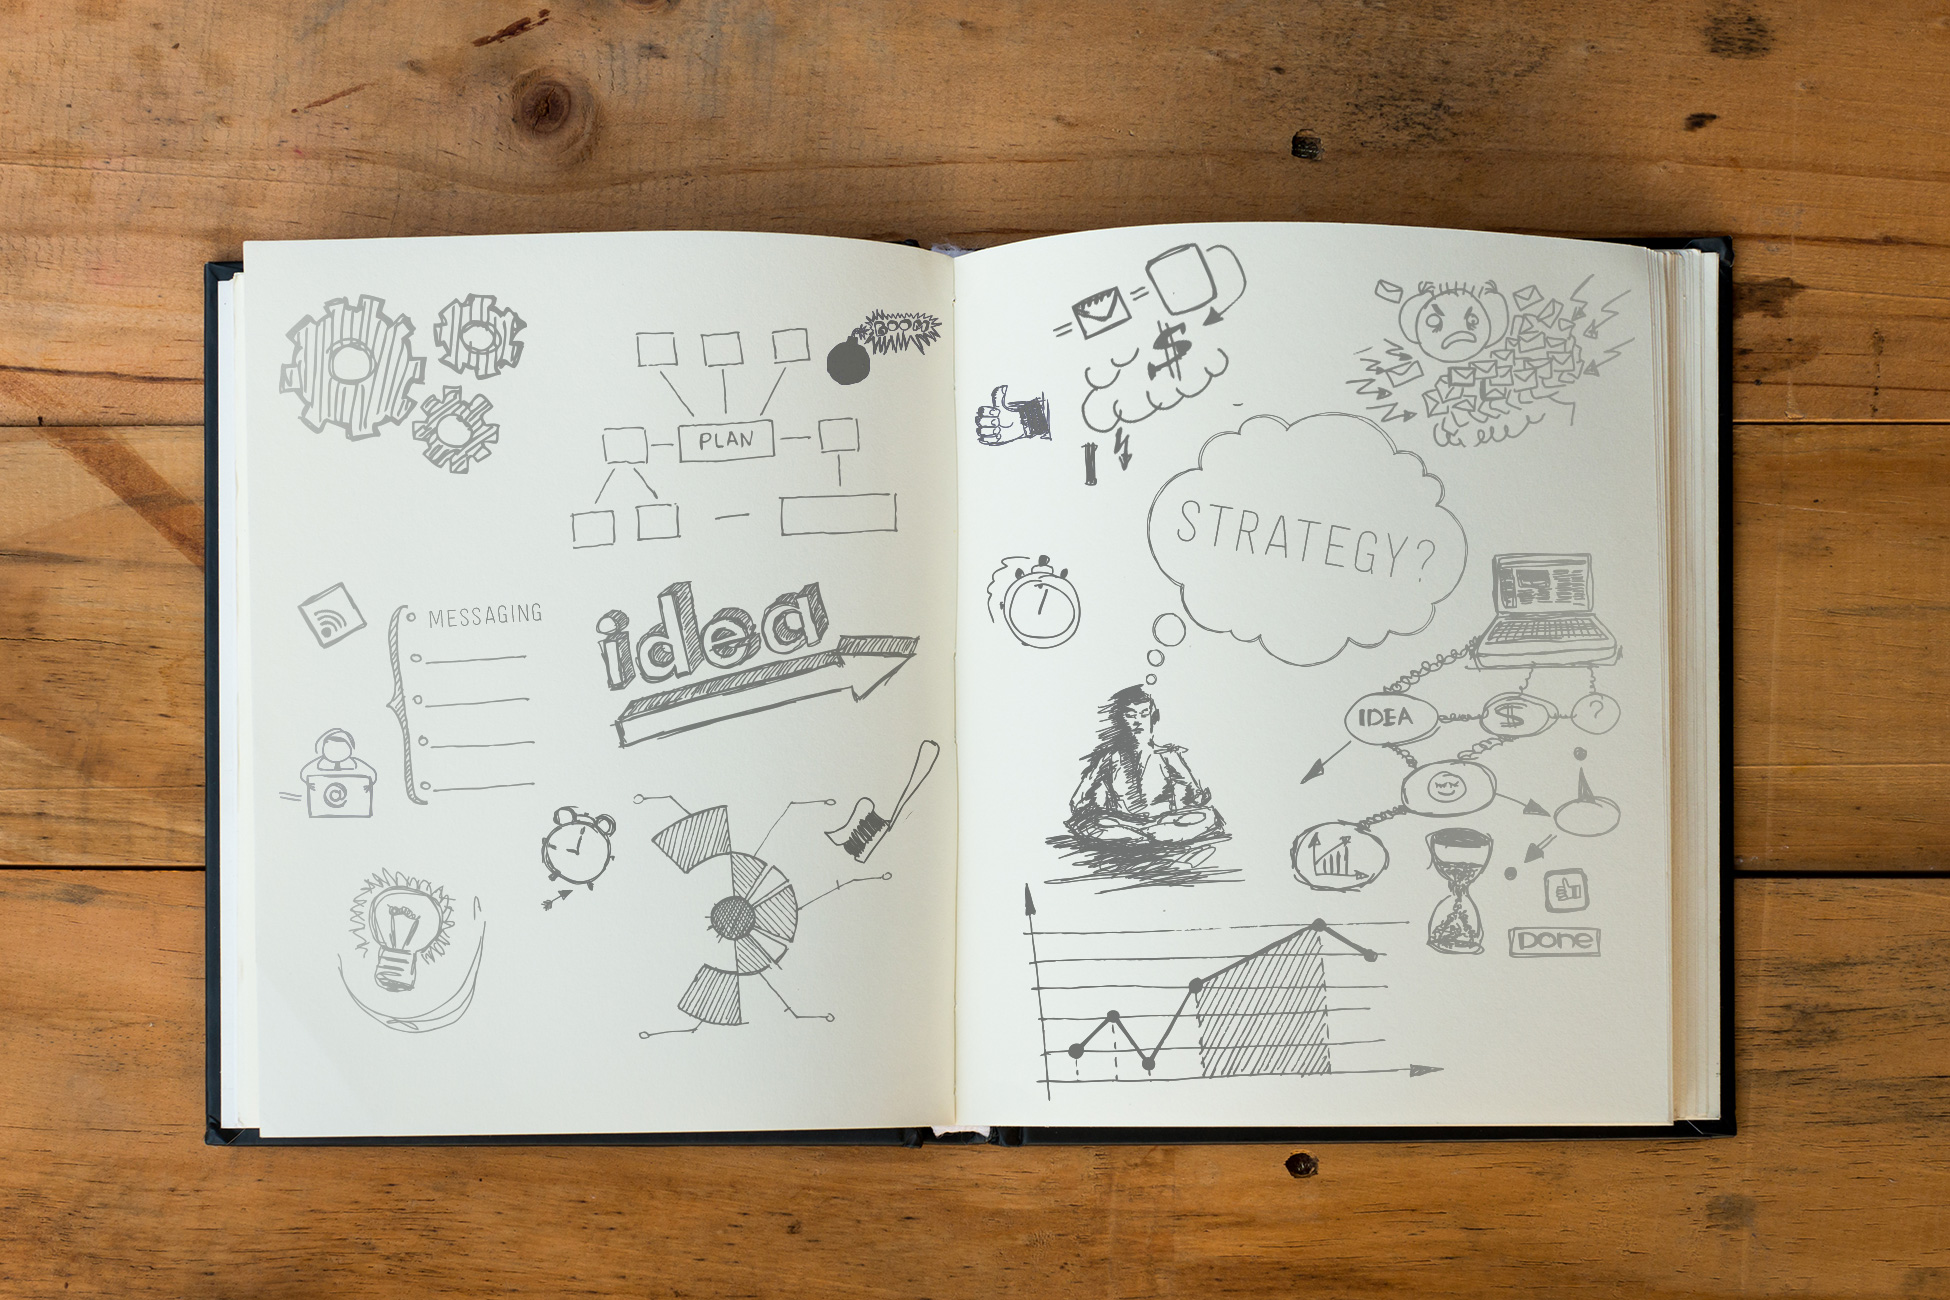 Picture of a branding sketchbook